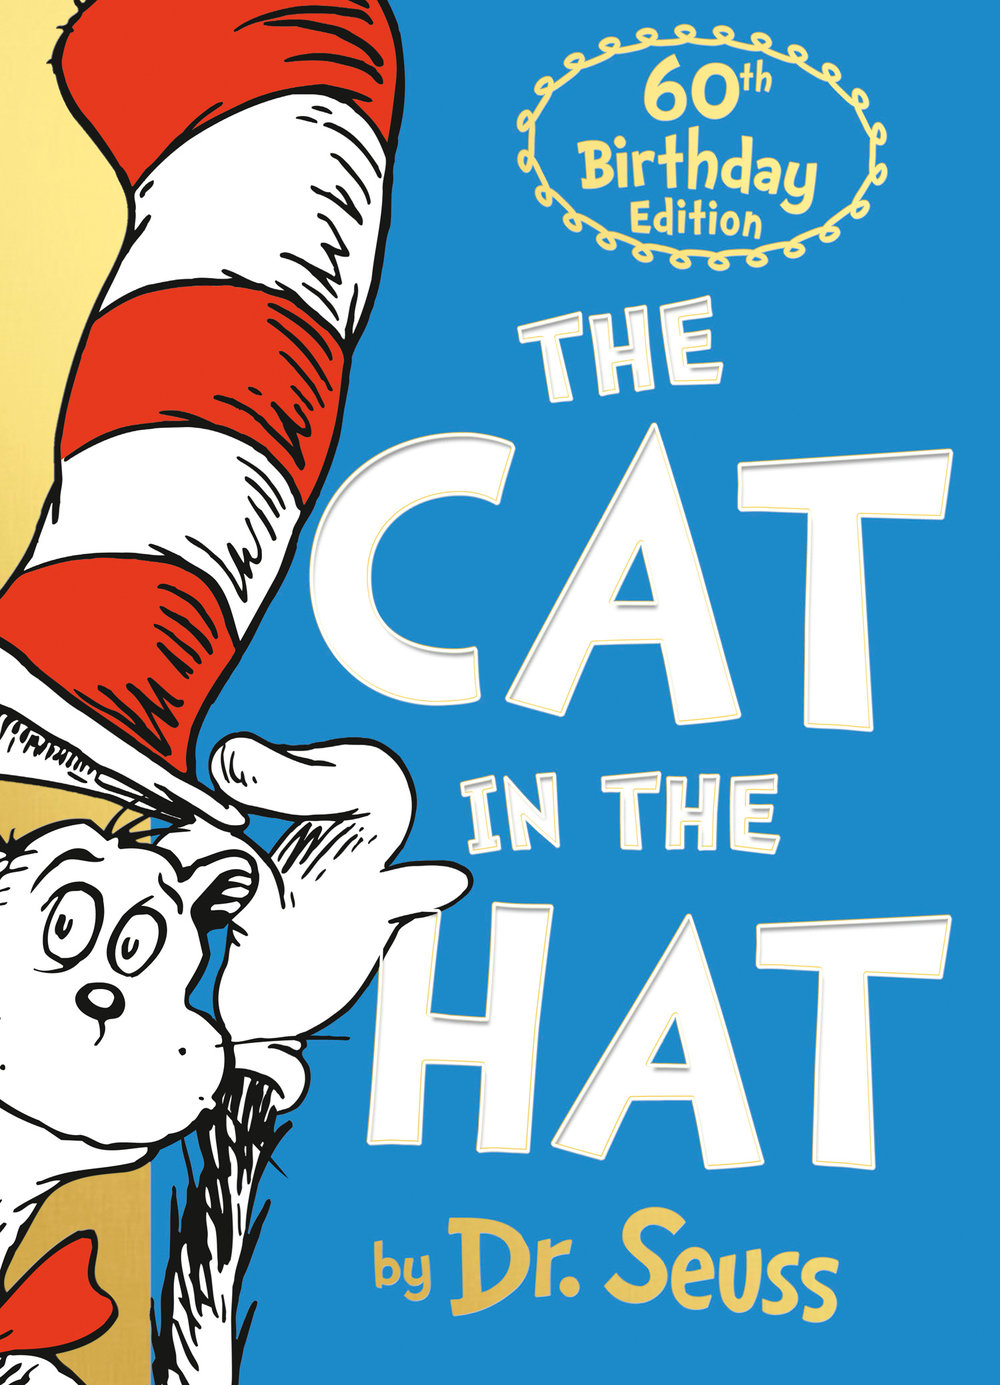 The Cat In The Hat 1.30pm